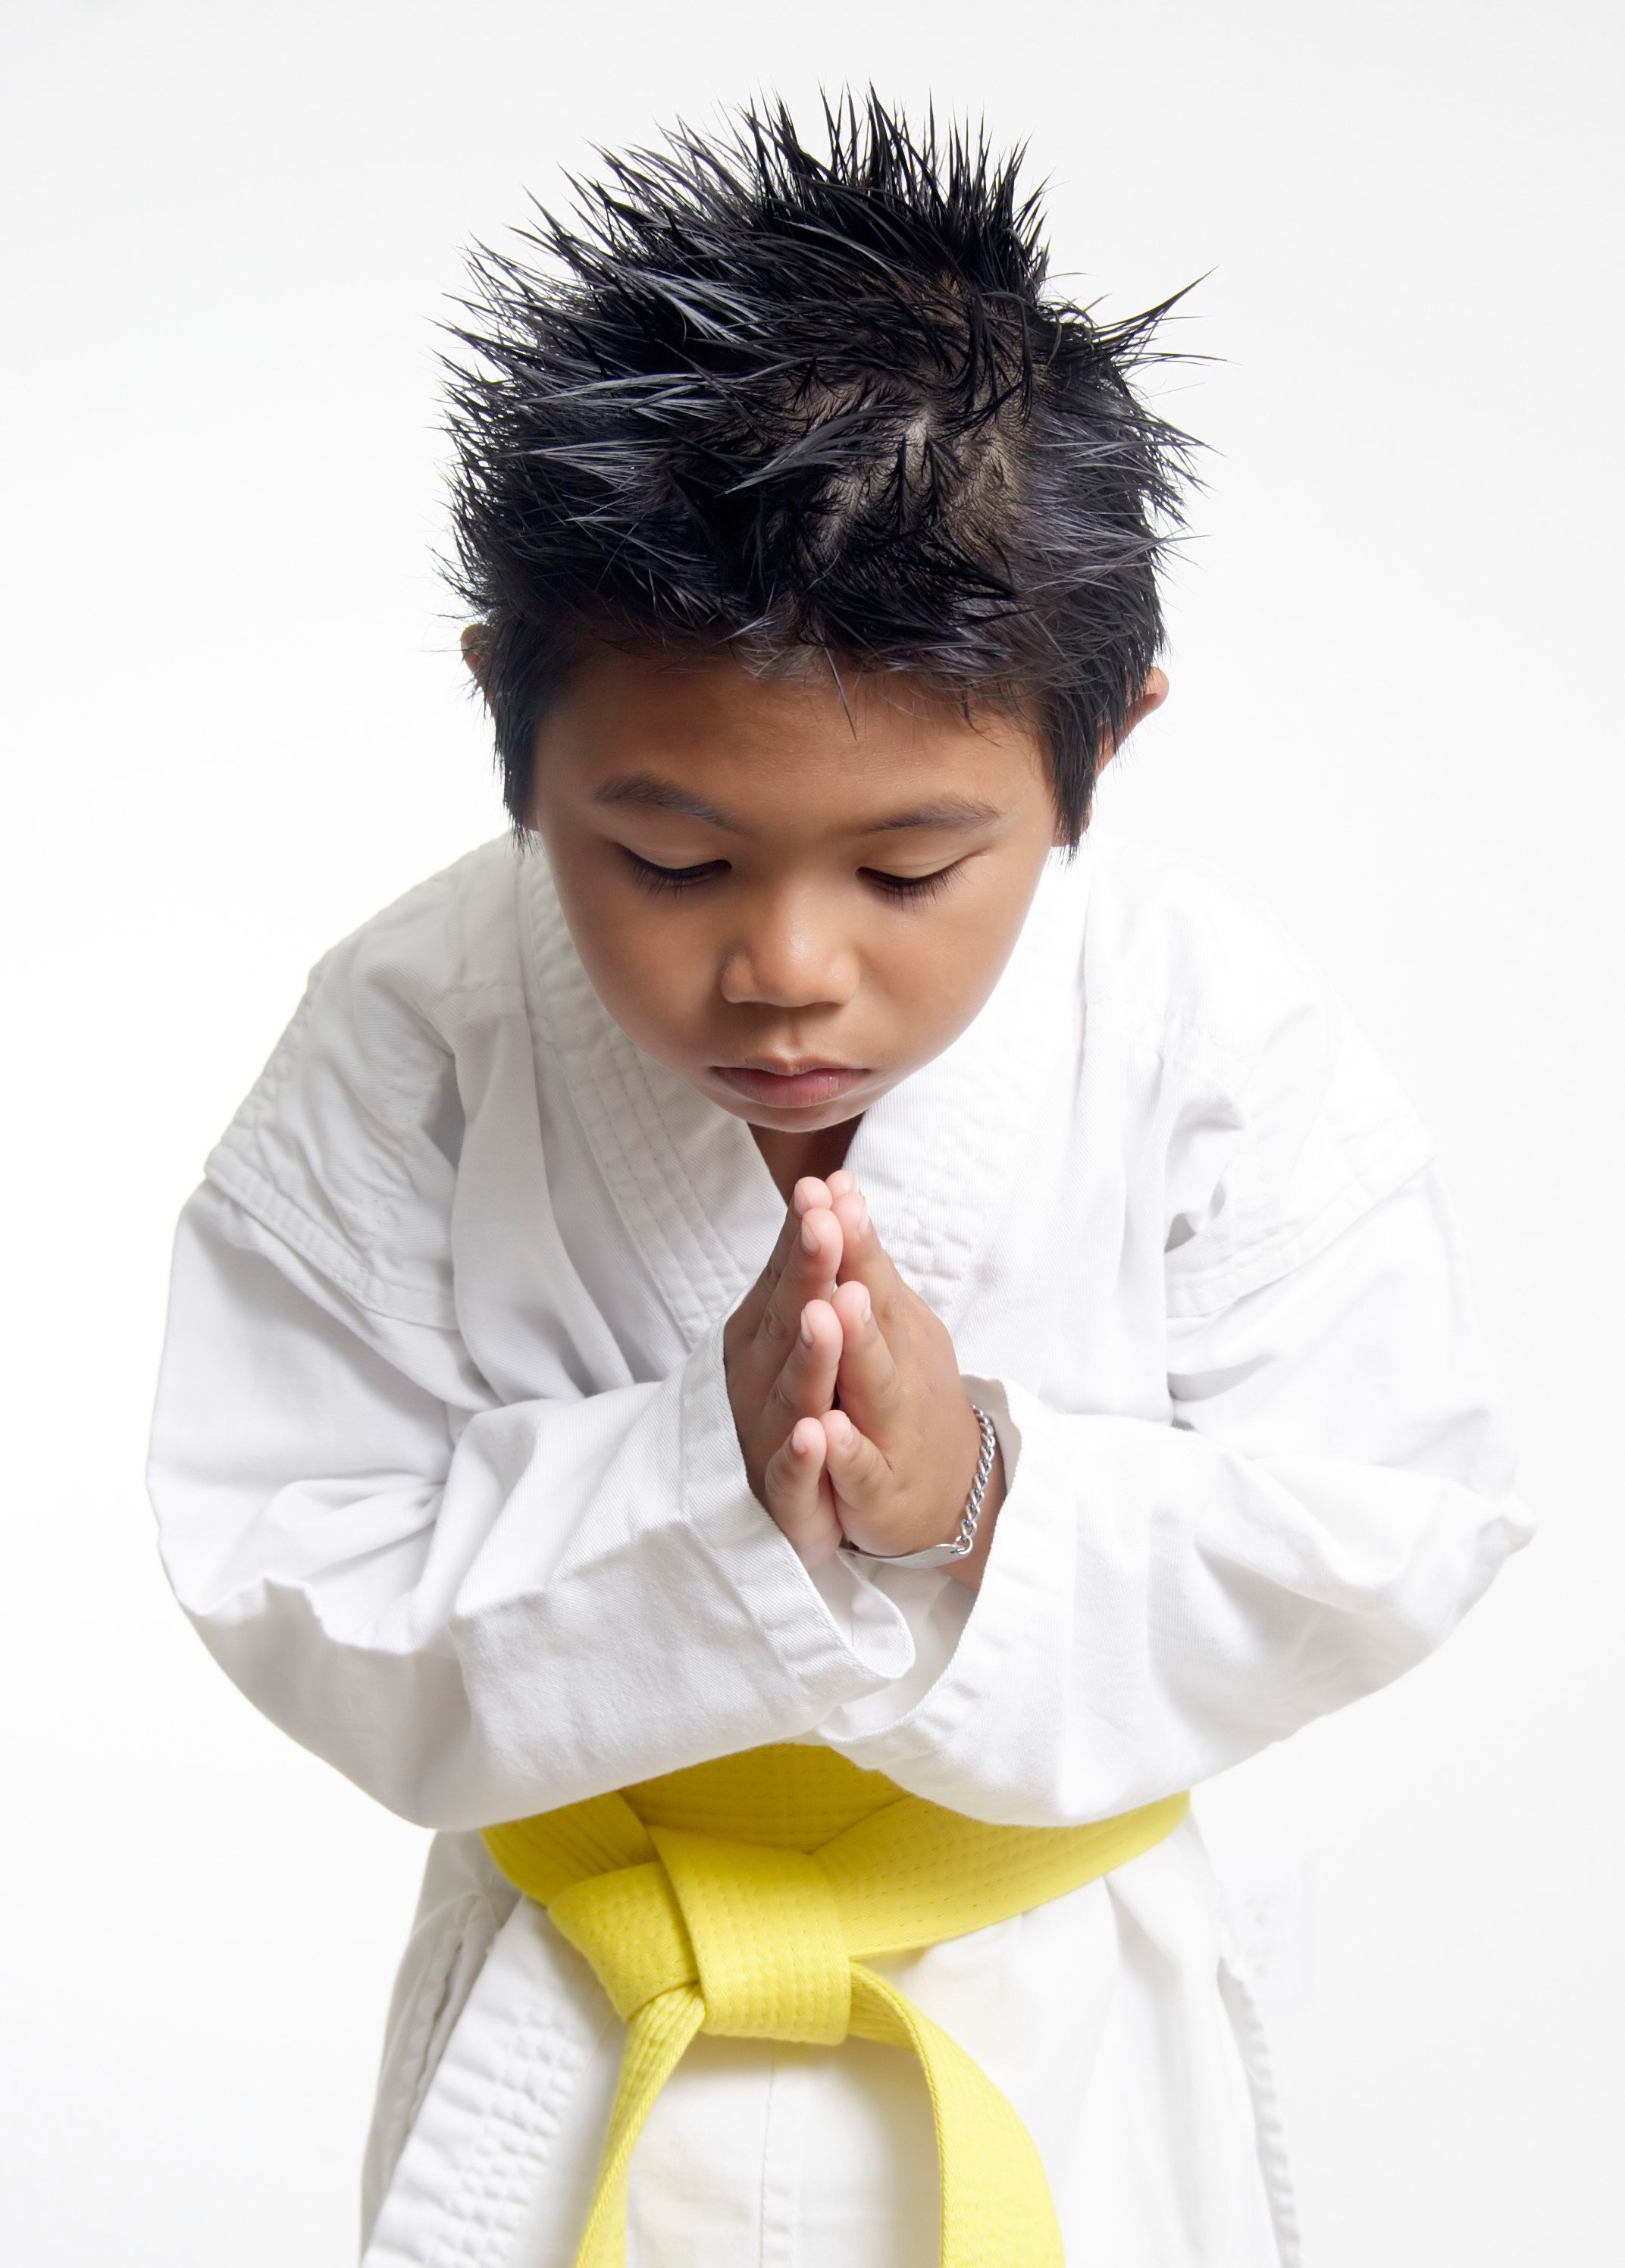 Karate boy bowing showing respect